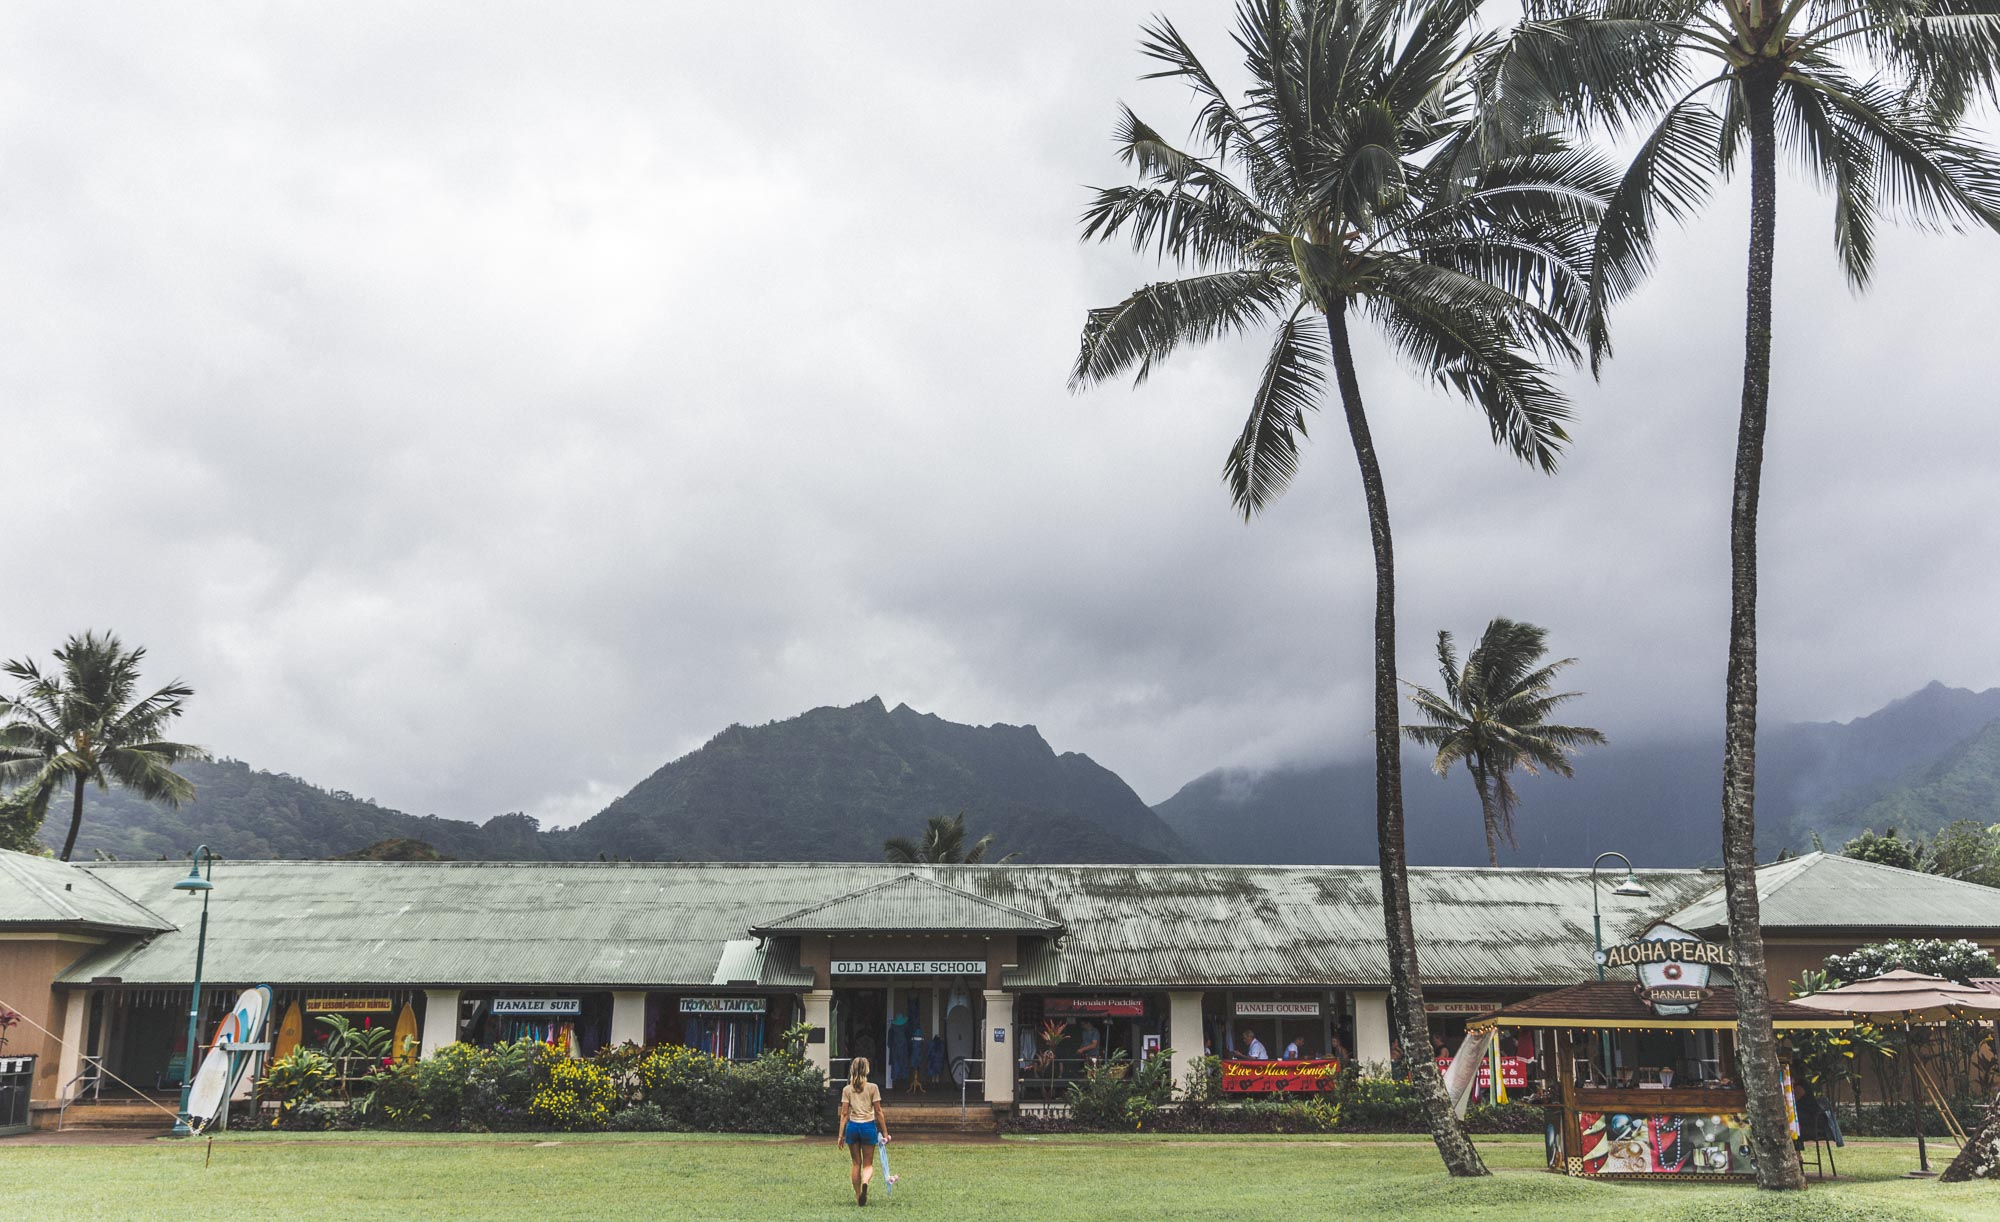 Downtown Hanalei Bay Kauai Hawaii Travel Guide via Find Us Lost